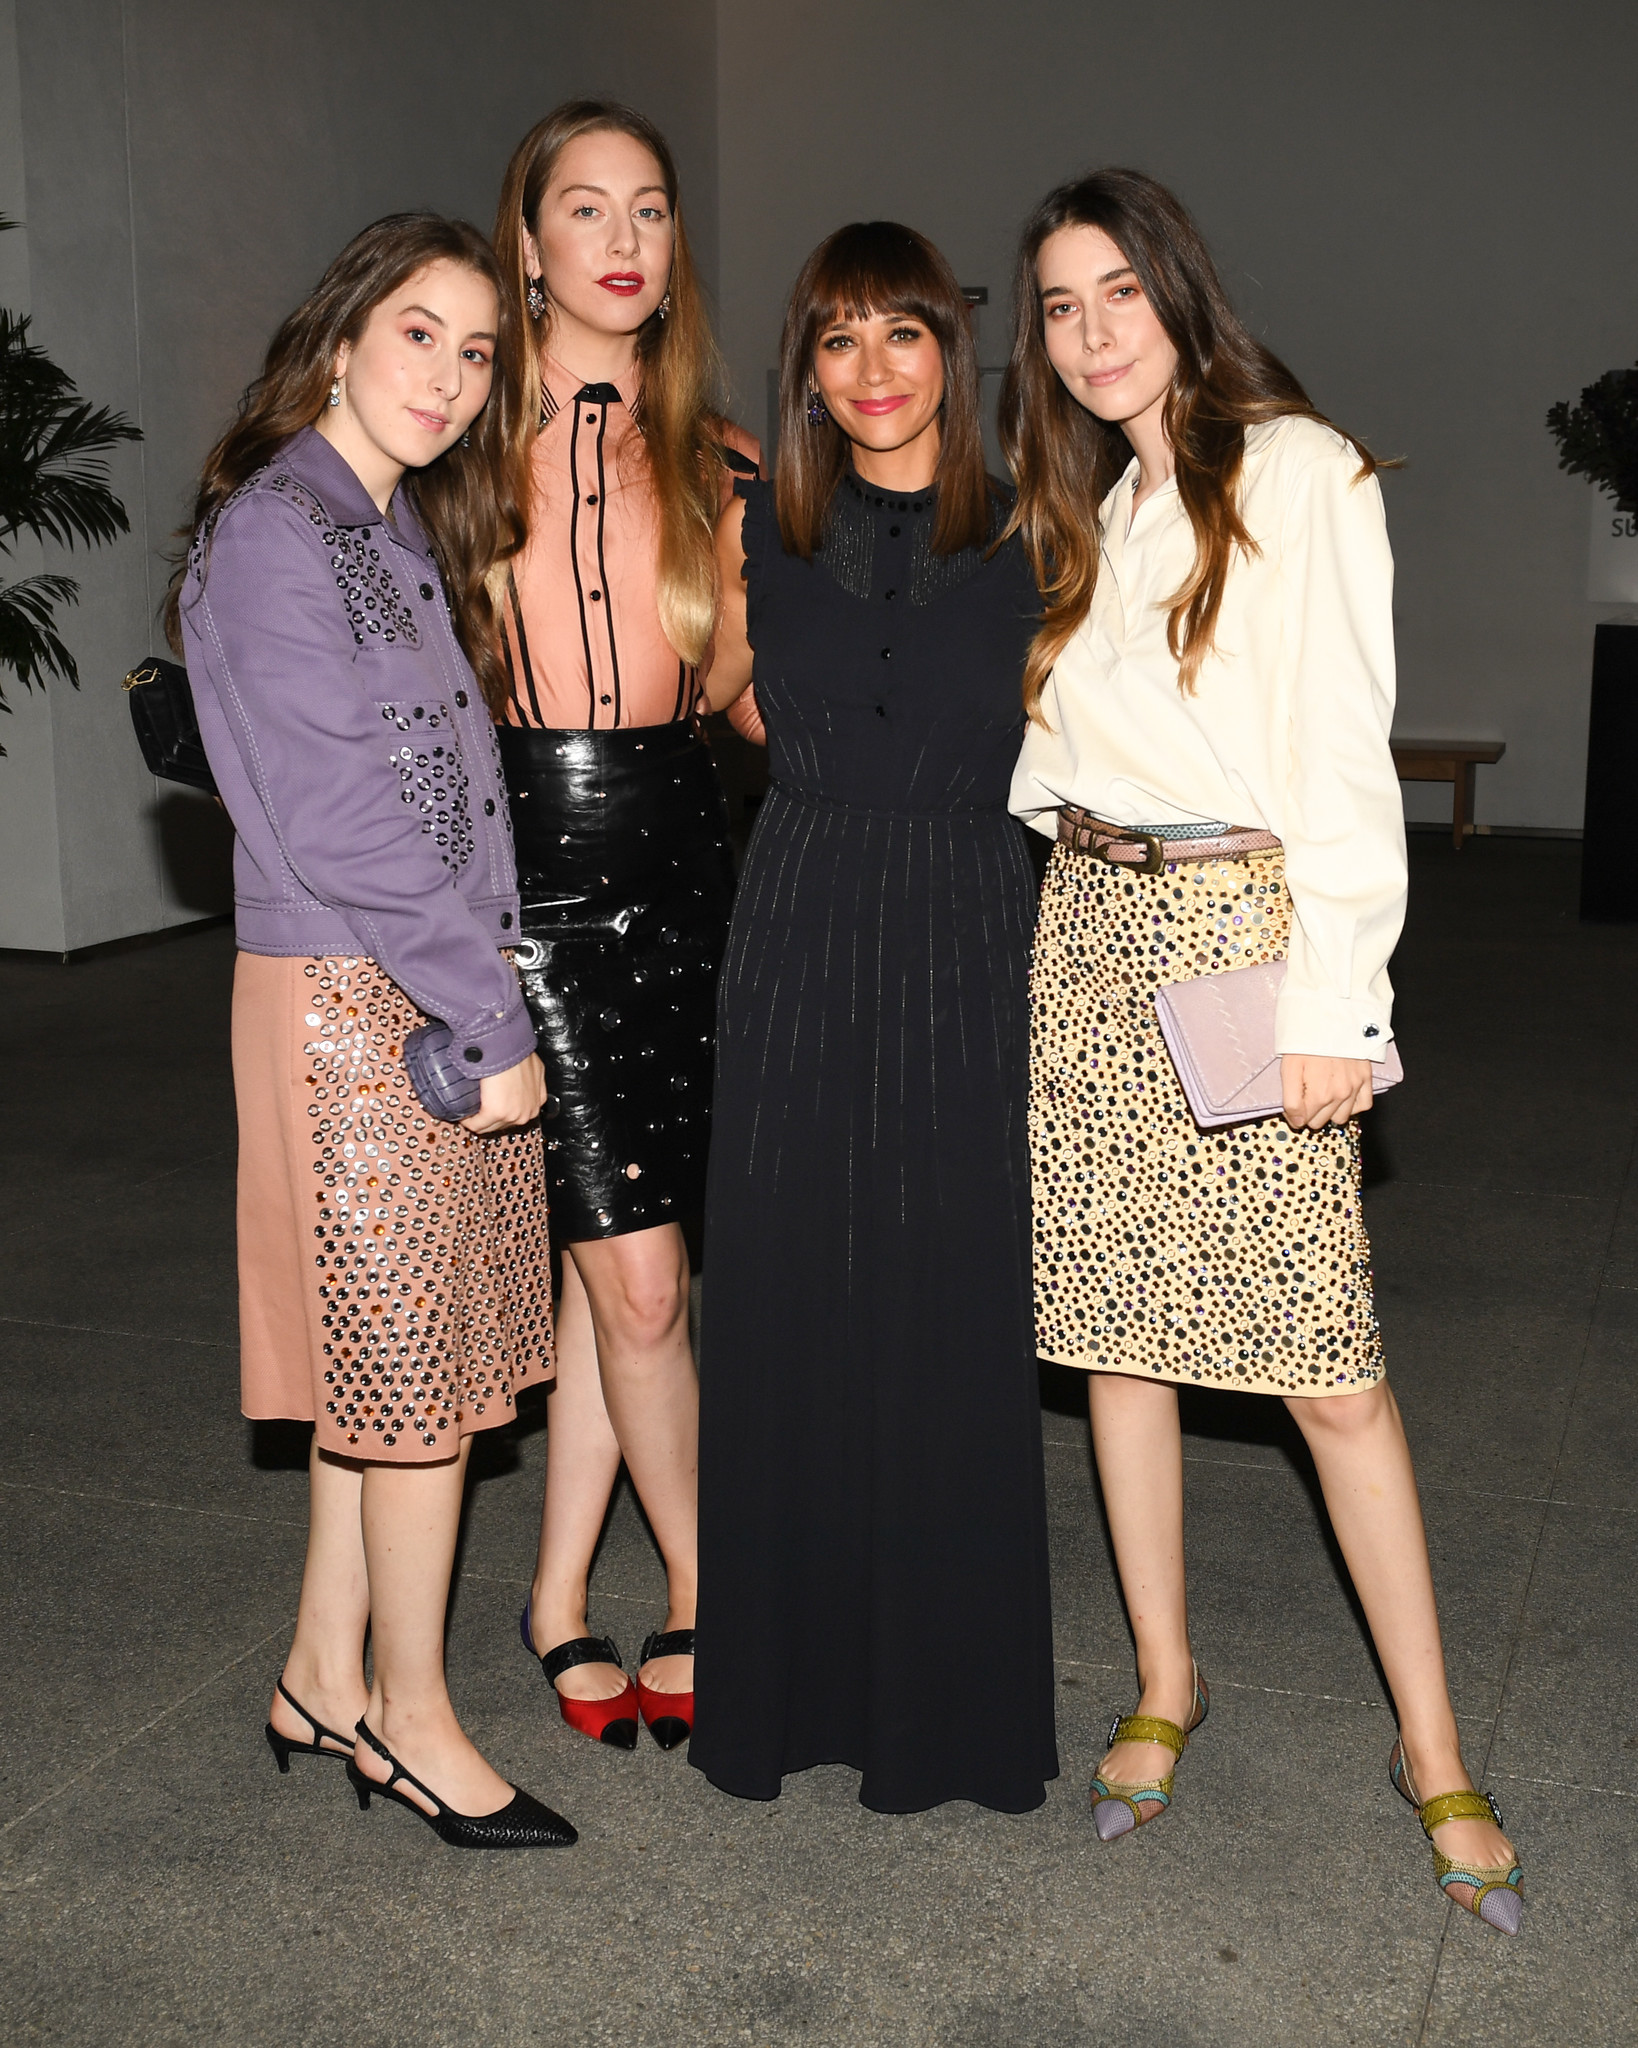 Este Haim, from left, Danielle Haim, Alana Haim, Rashida Jones and Danielle Haim attend the Hammer Museum gala on Saturday.